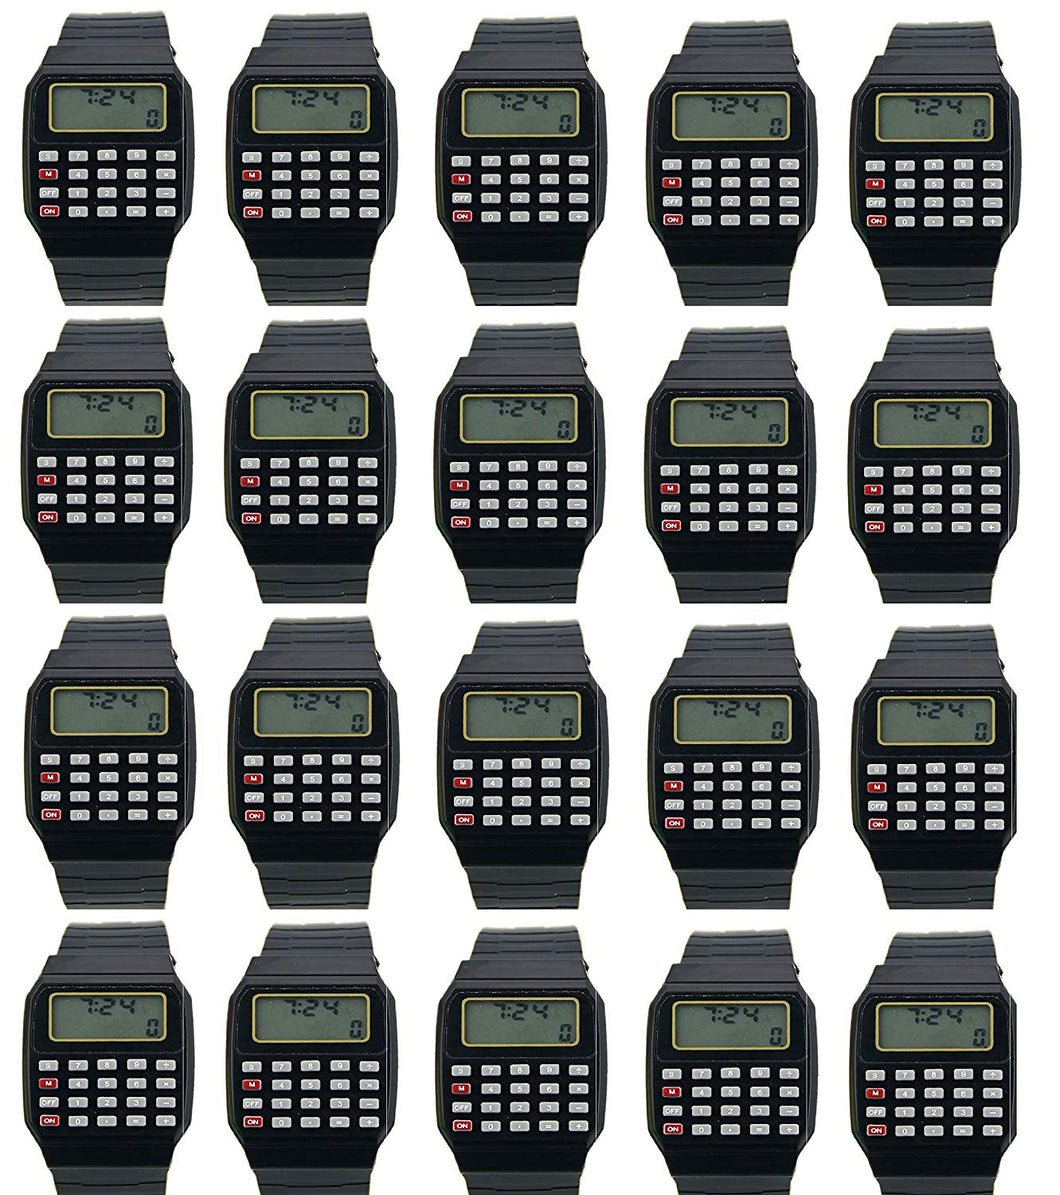 Toyshine Birthday Party Return Gift - 20 Multifunction Calculator Smart Band Party Favor